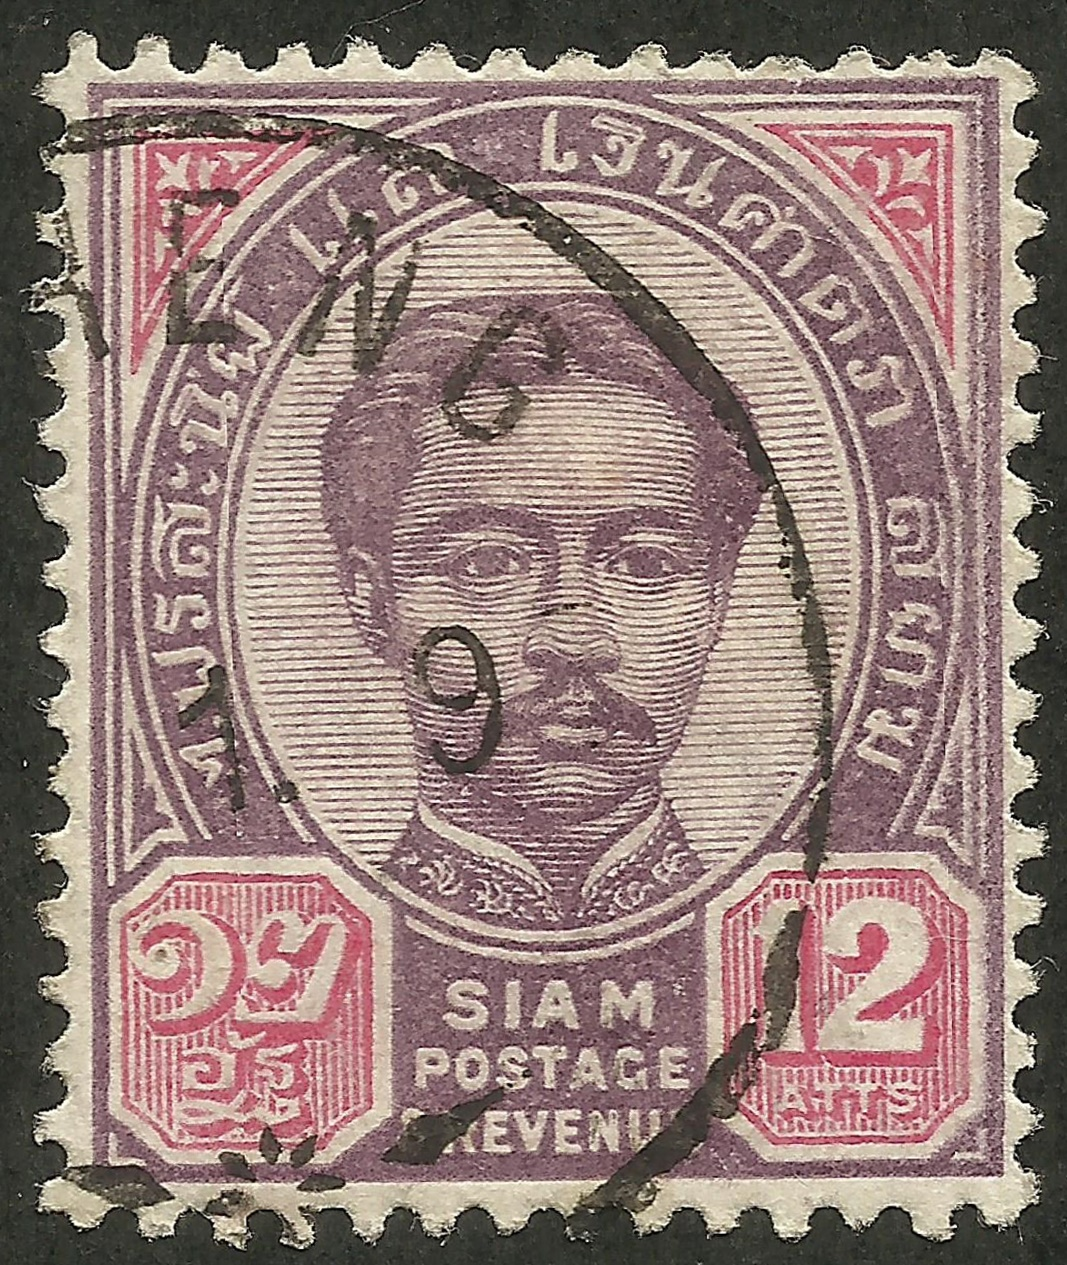 Siam #17 (1887) postmark dated 1 September